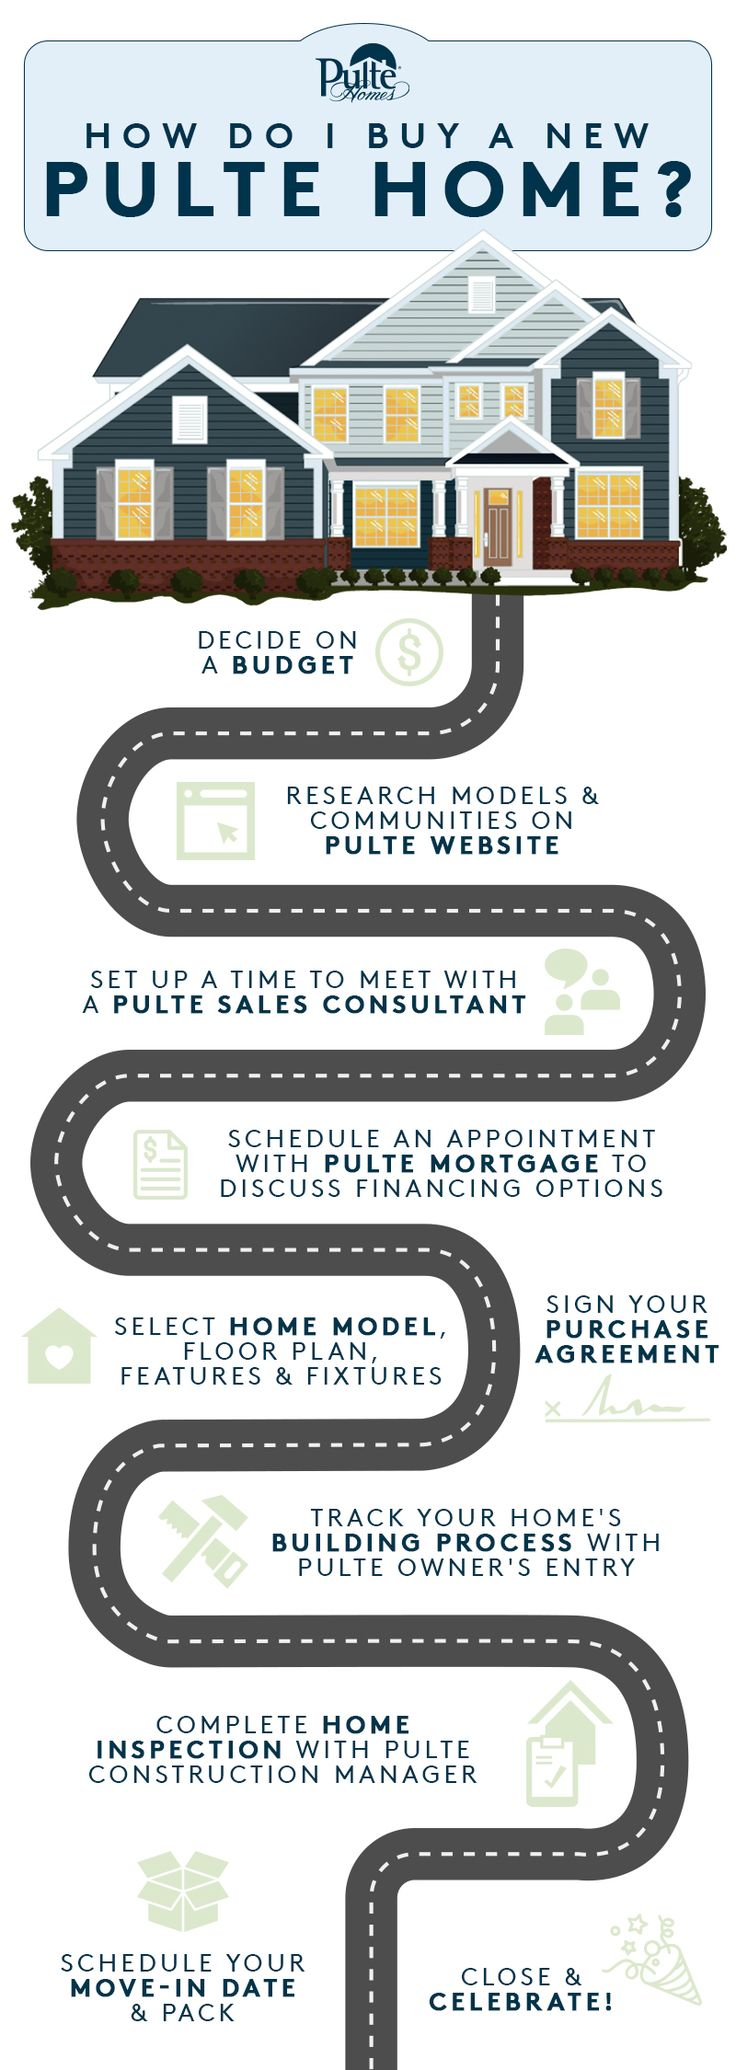 Pin for Later! From deciding on a budget to tips on scheduling your move-in date, simplify buying and building your dream home with this helpful checklist! | Pulte Homes